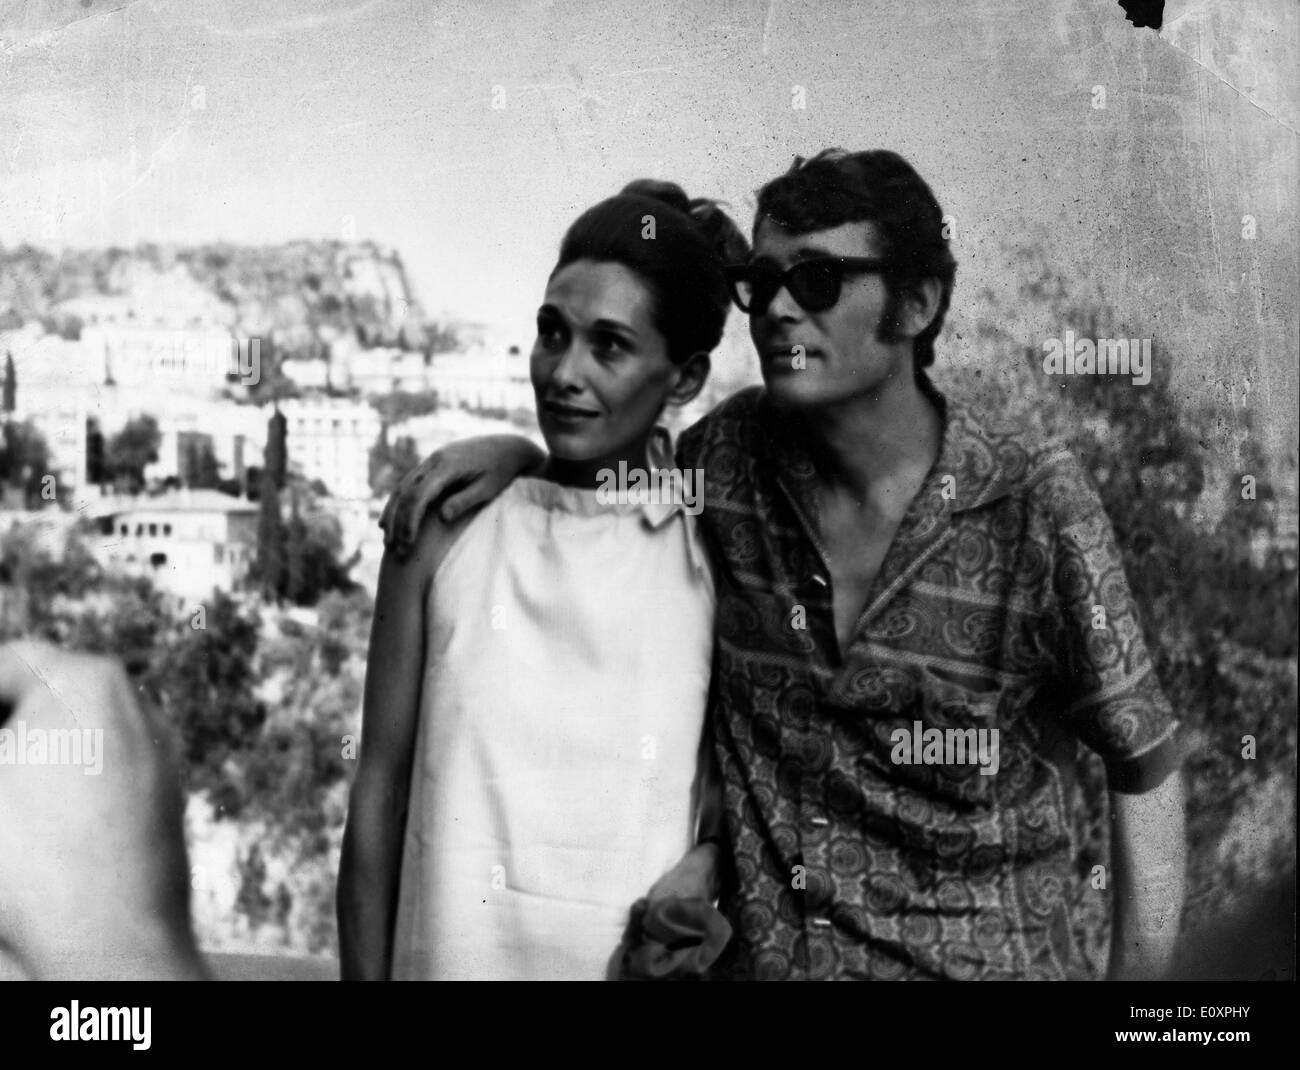 Actor Peter O'Toole and his wife Sian Phillips during a press conference - Stock Image